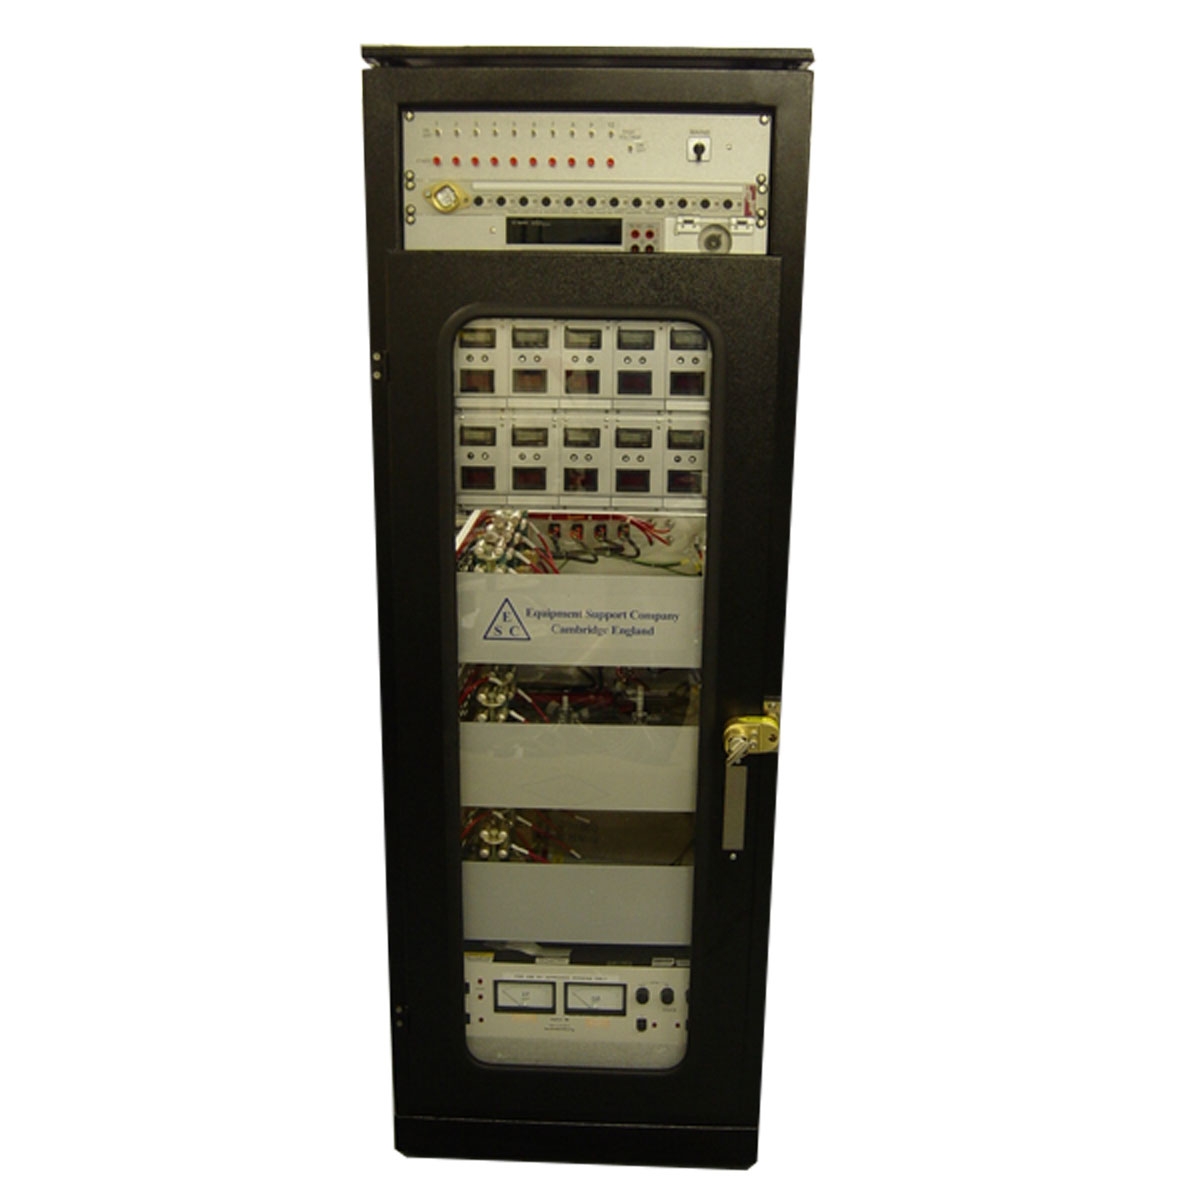 Equipment Support - High Voltage Control